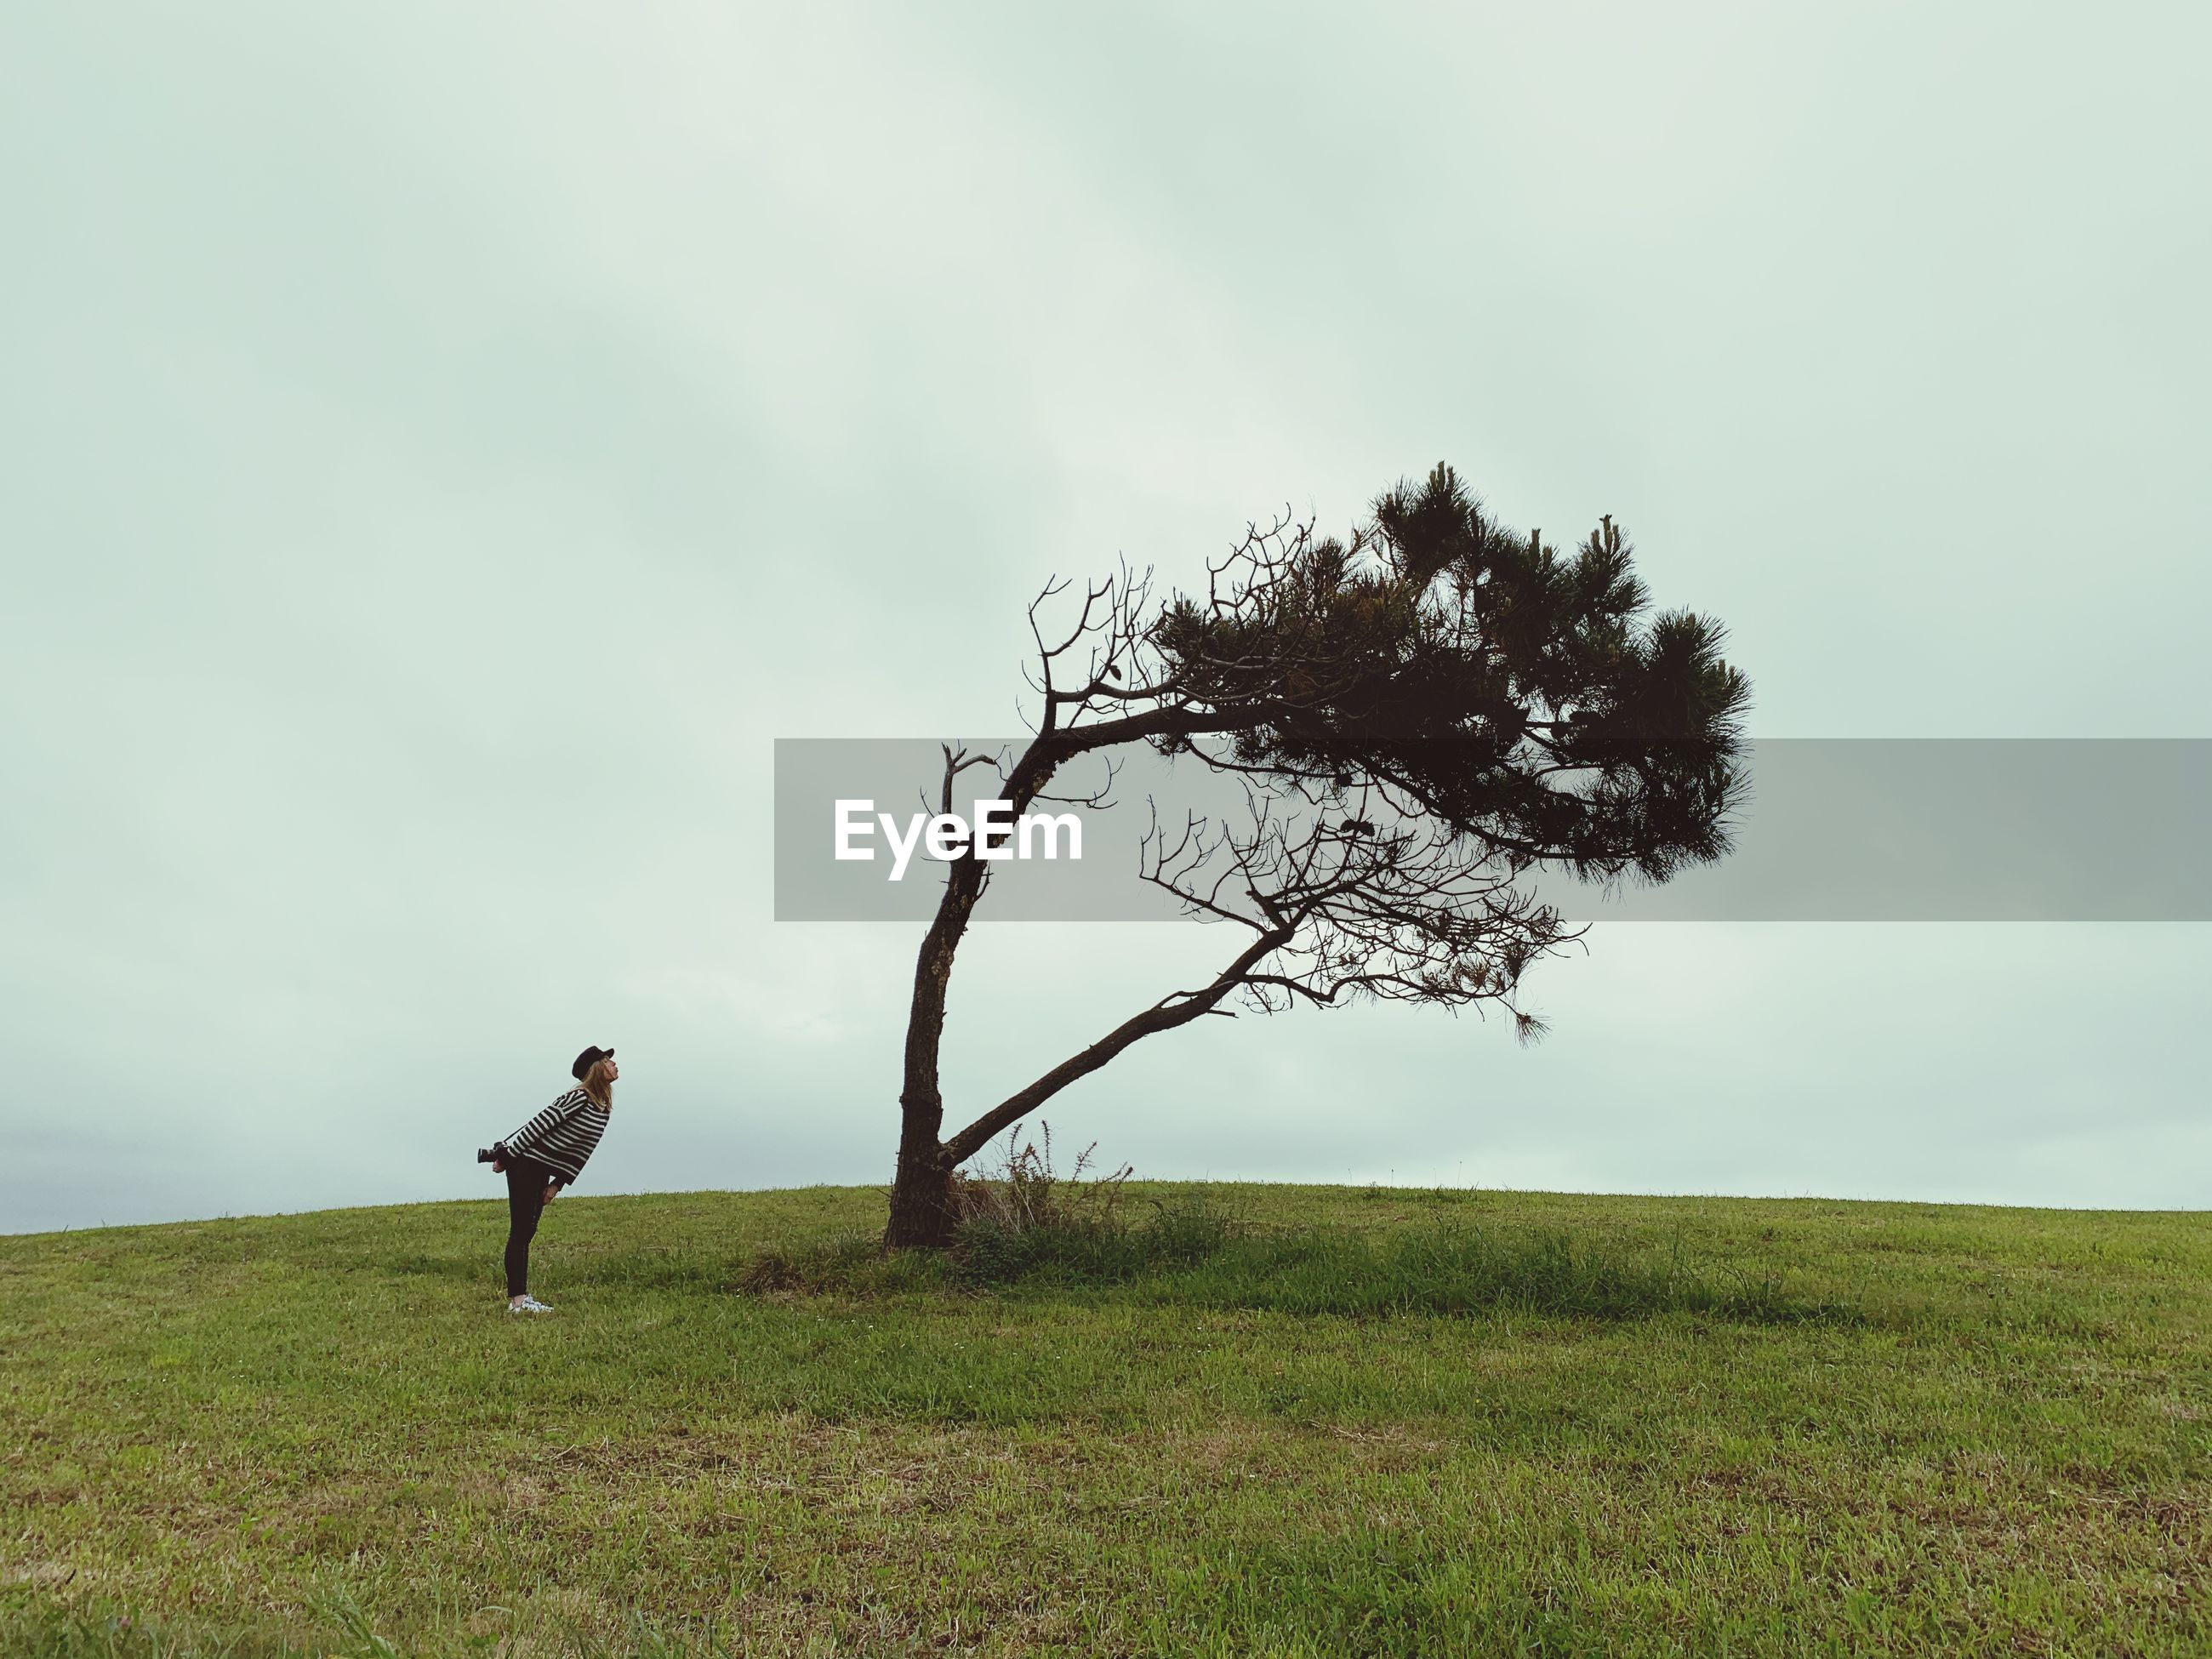 Woman standing by tree on land against sky